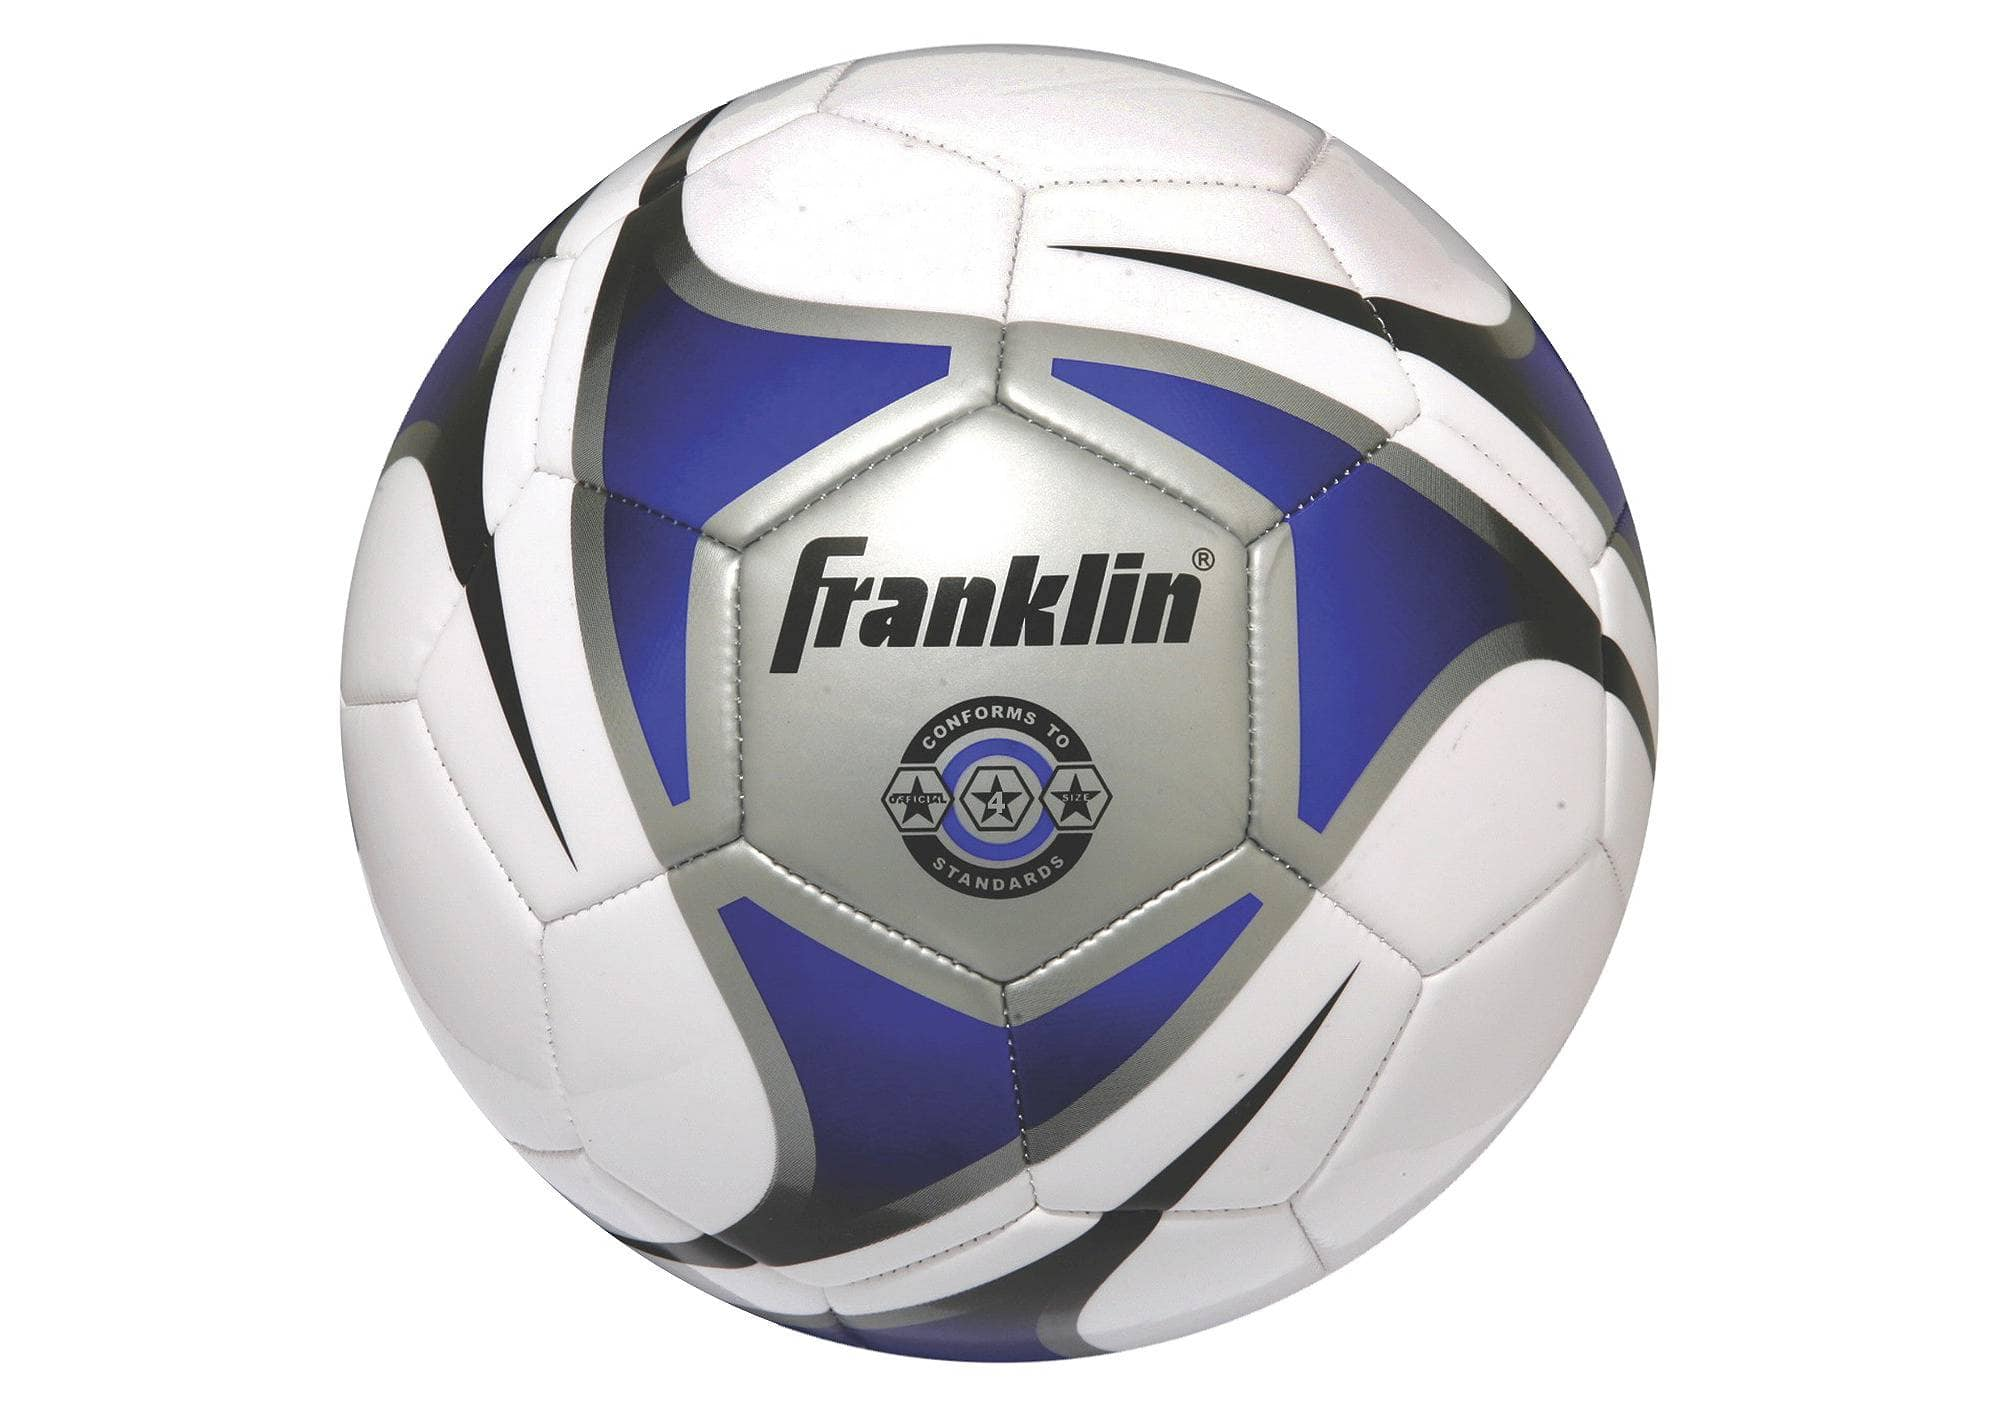 Back in Stock: Target Franklin All Weather Soccer Ball Comp (size 4) + Free Shipping $2.98